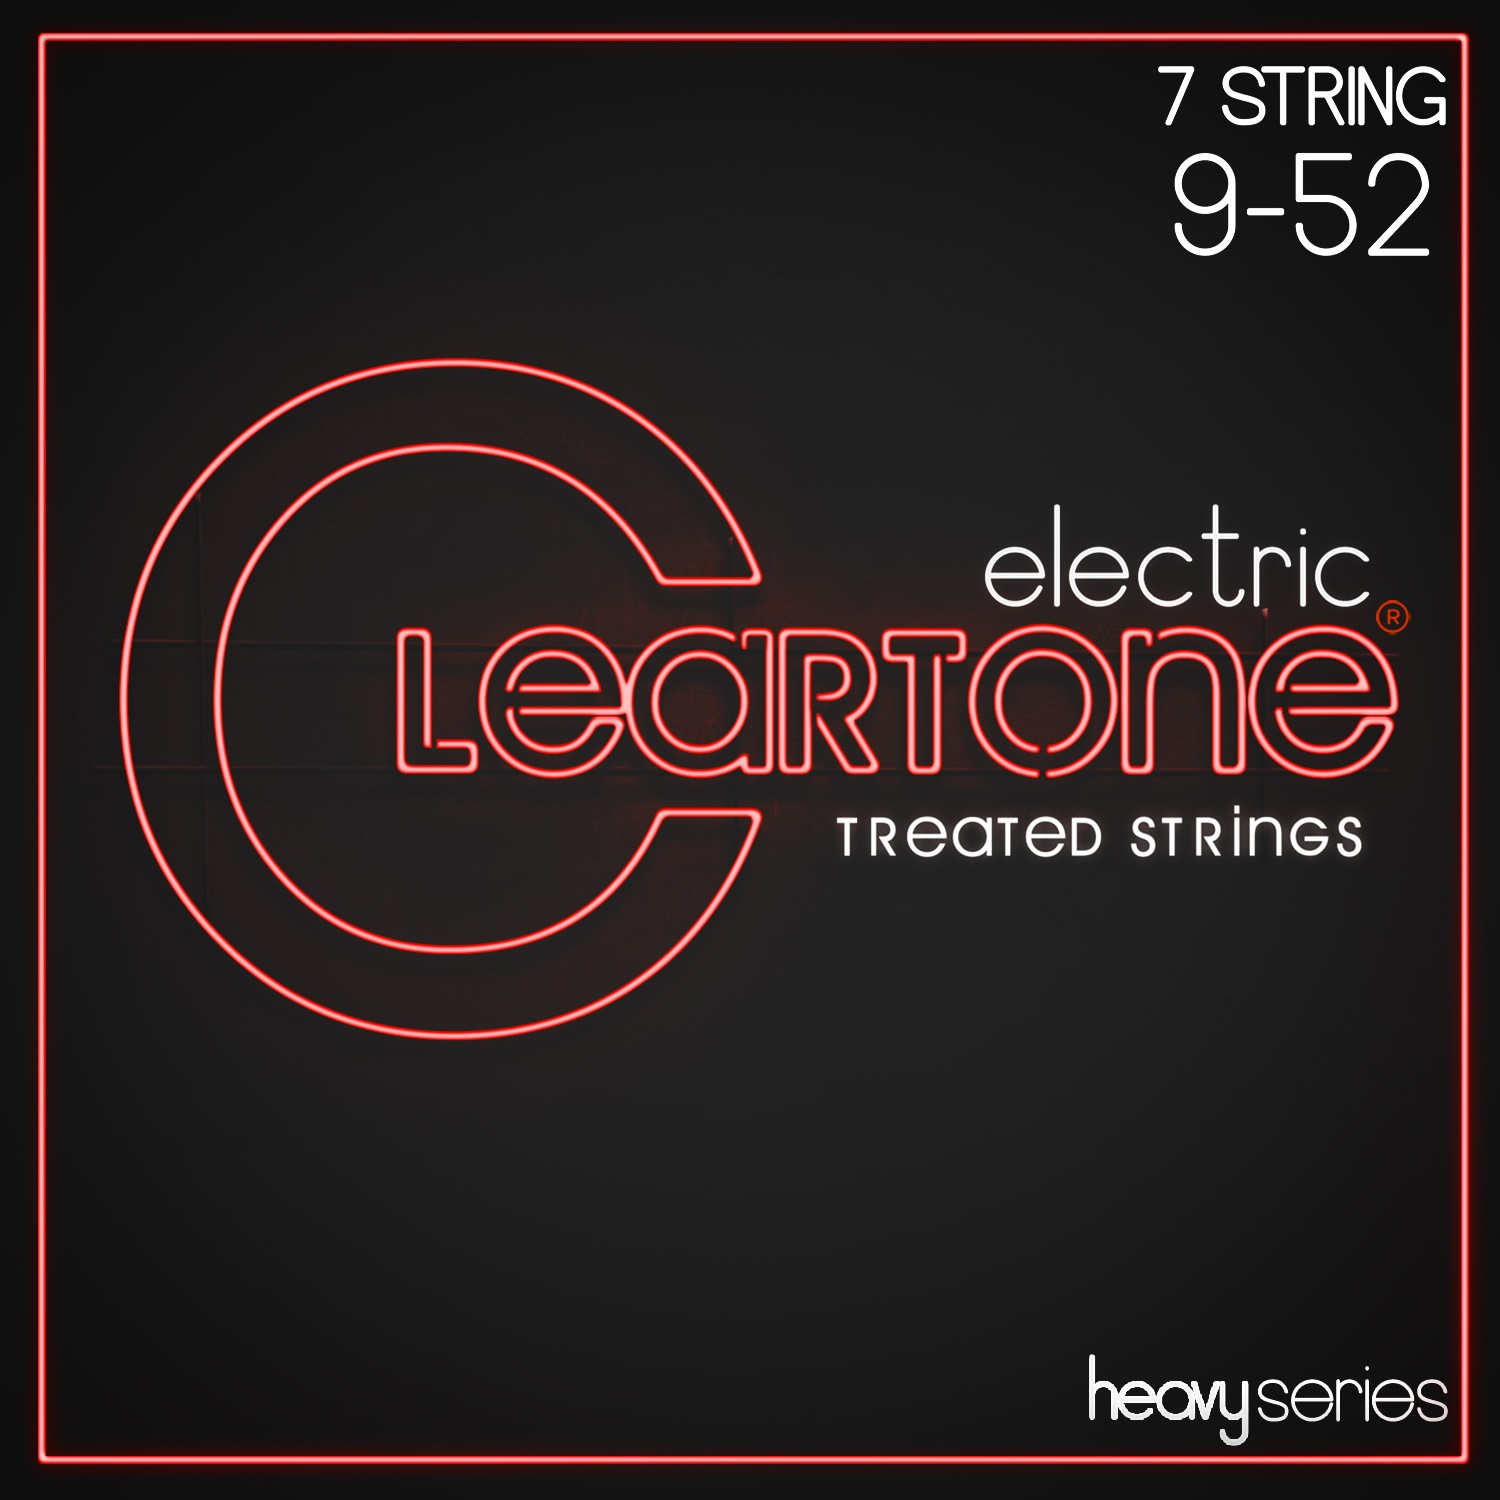 Cleartone Heavy Series 7-String 9-52